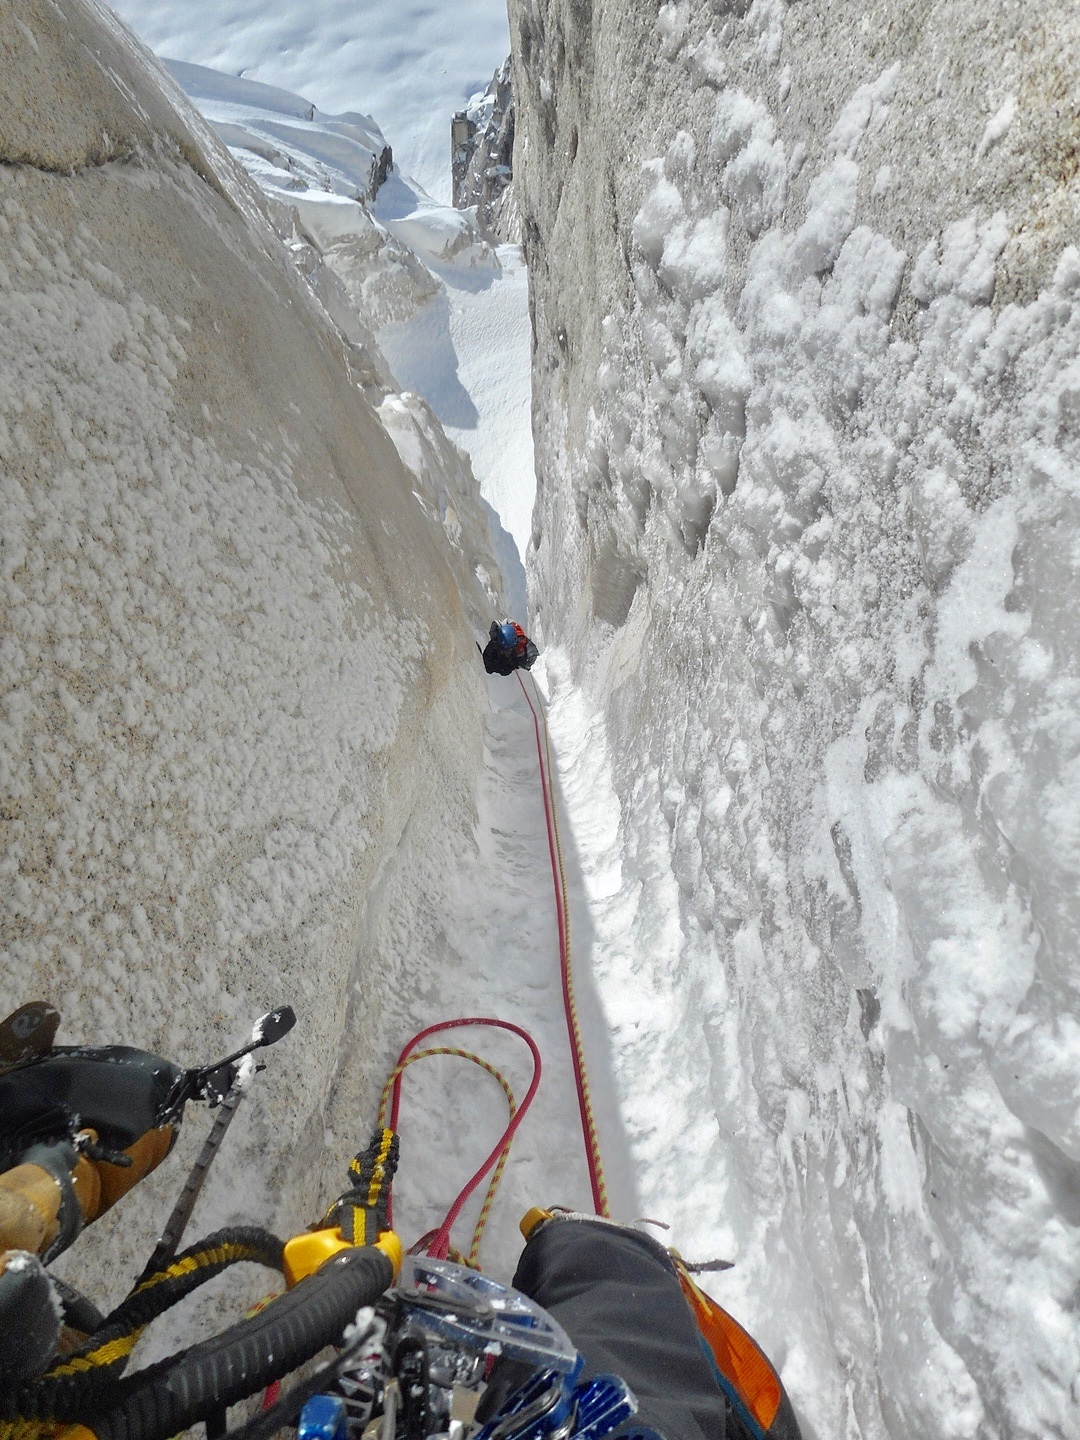 Marvell follows a pitch on the second ice hose that was even longer than the first, which the author estimated at 340 meters long. [Photo] Alan Rousseau